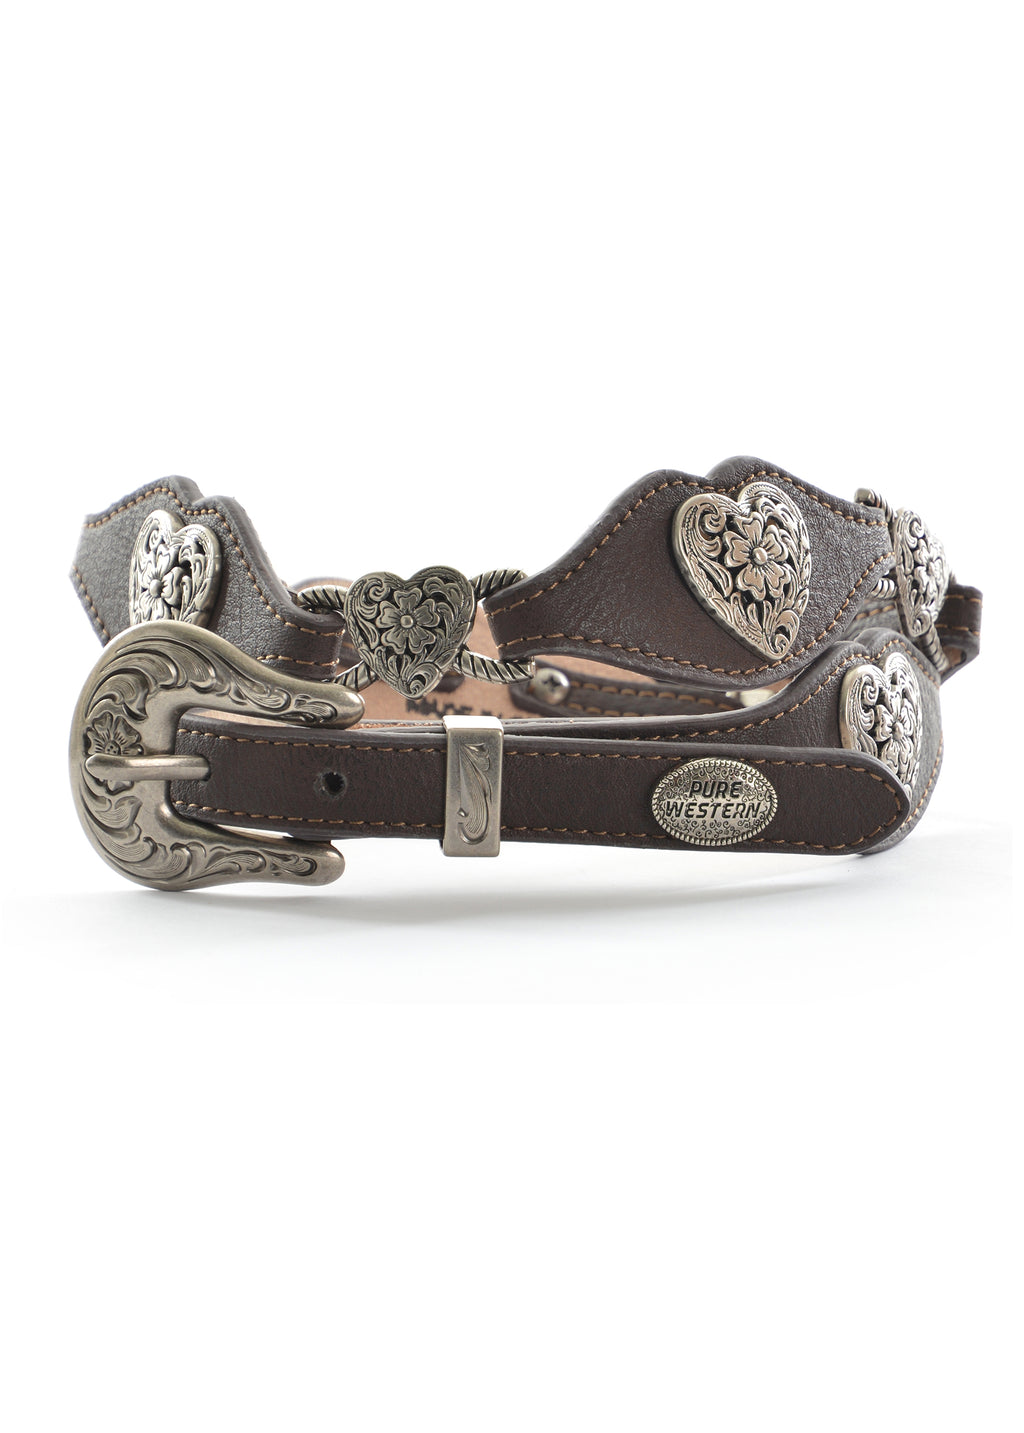 Women's Heart Belt - Vault Country Clothing